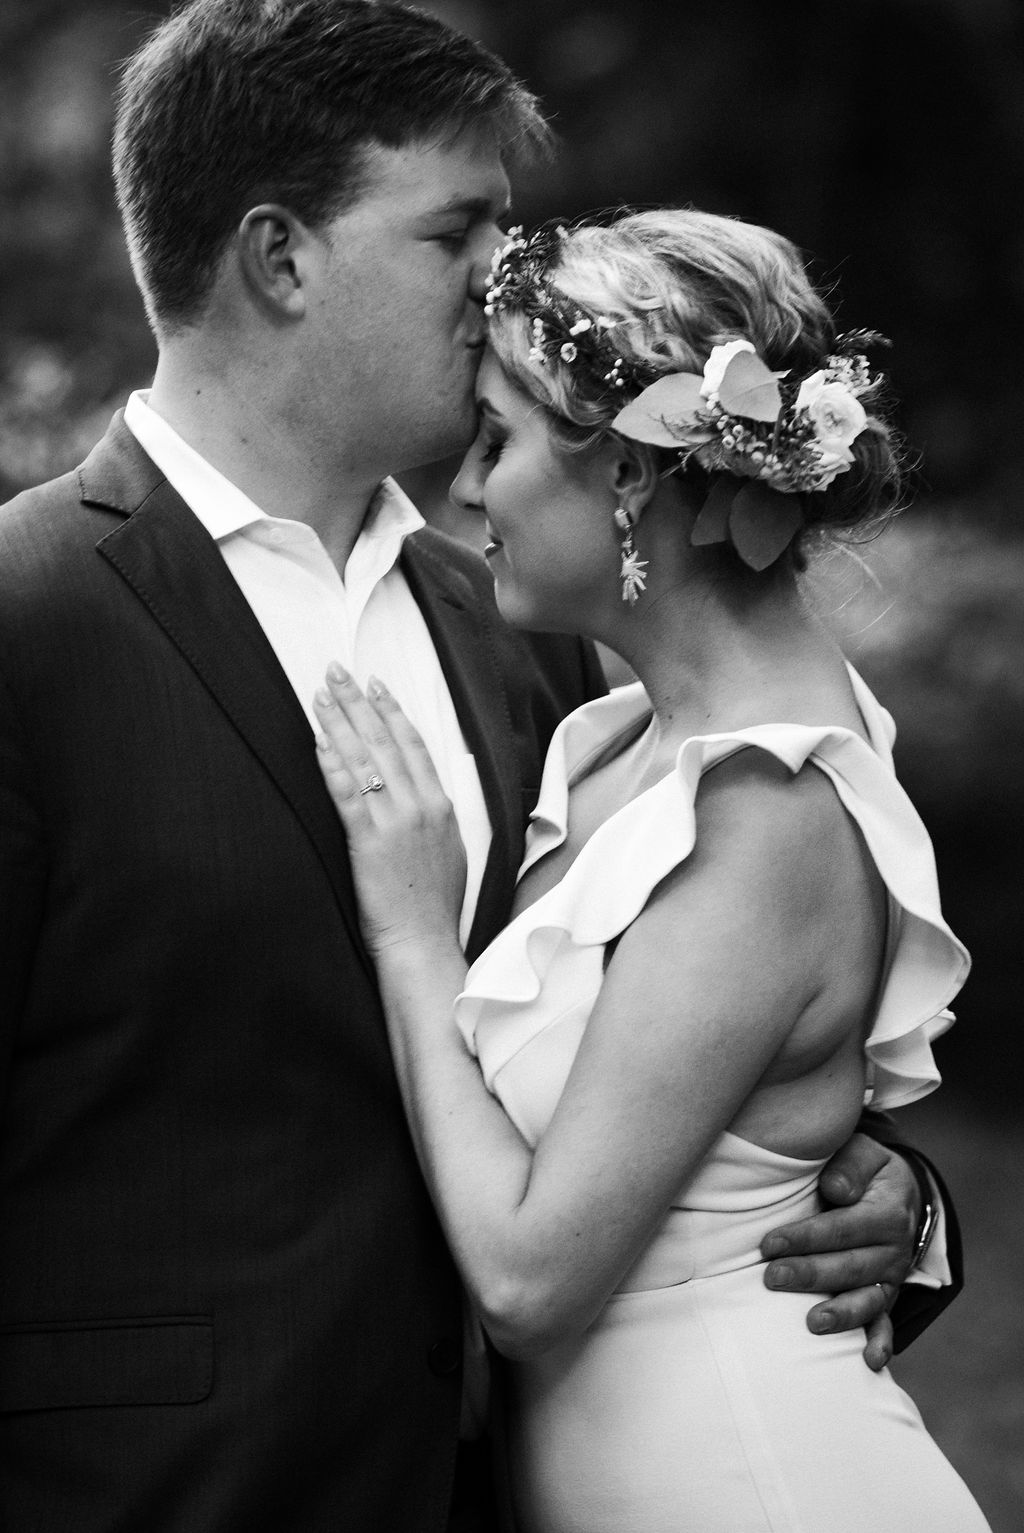 Bride and Groom at Ritchie Hill Venue in Concord NC by Charlotte Wedding Photographers